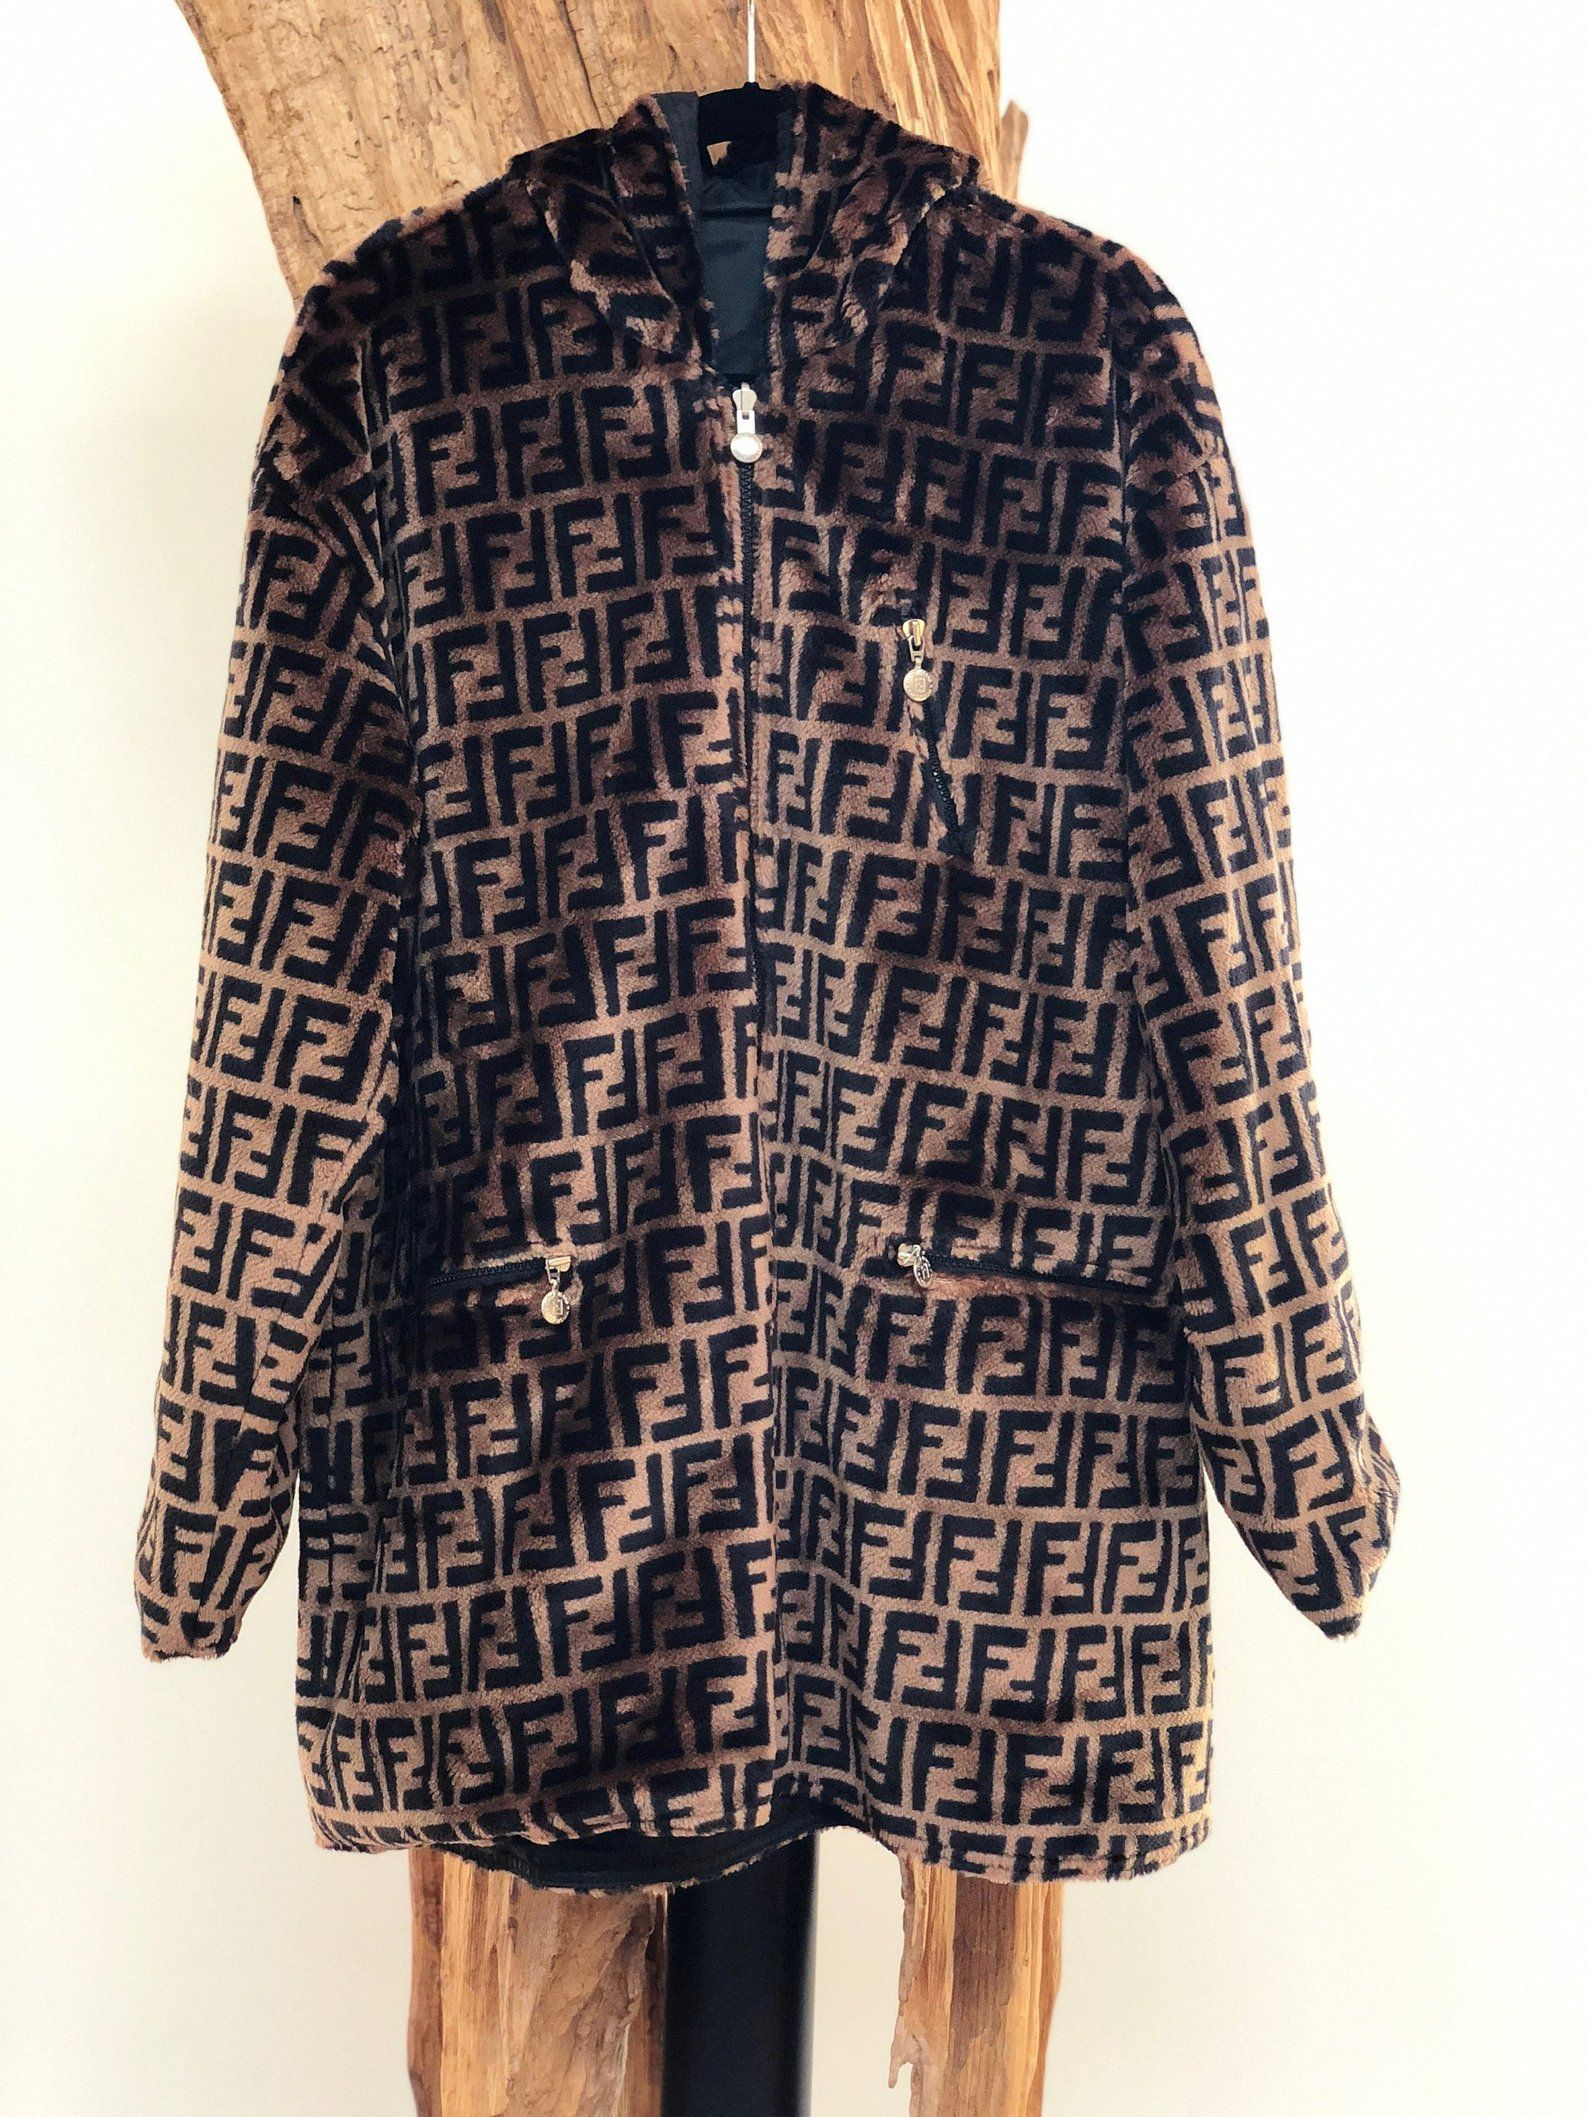 648f3355cb9 Vintage FENDI FF Zucca Print Reversible Faux Fur MONOGRAM Hooded ...